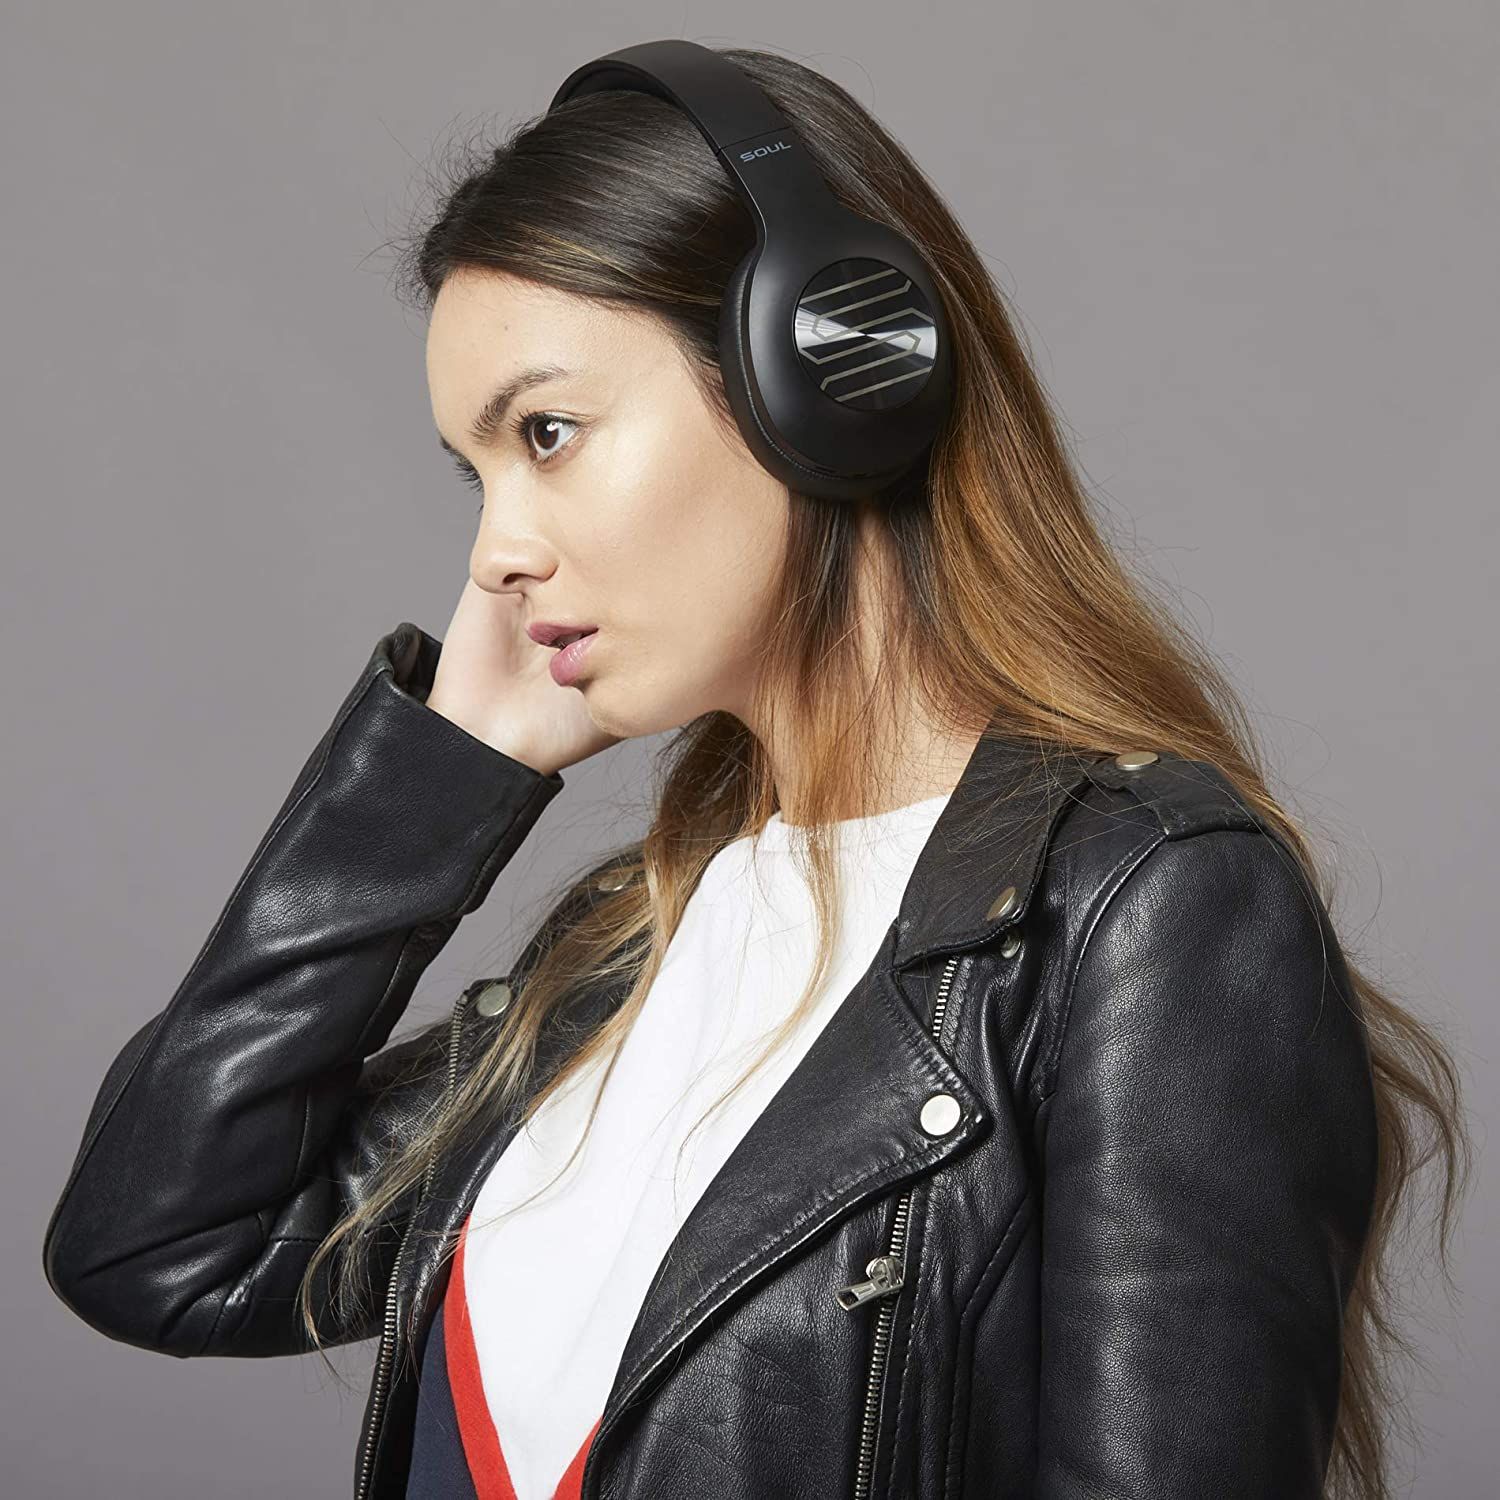 Soul Electronics Ultra Wireless Foldable Over-Ear Stereo Bass Headphones with Soft Earmuffs & Light Weight for Prolonged Waring Black